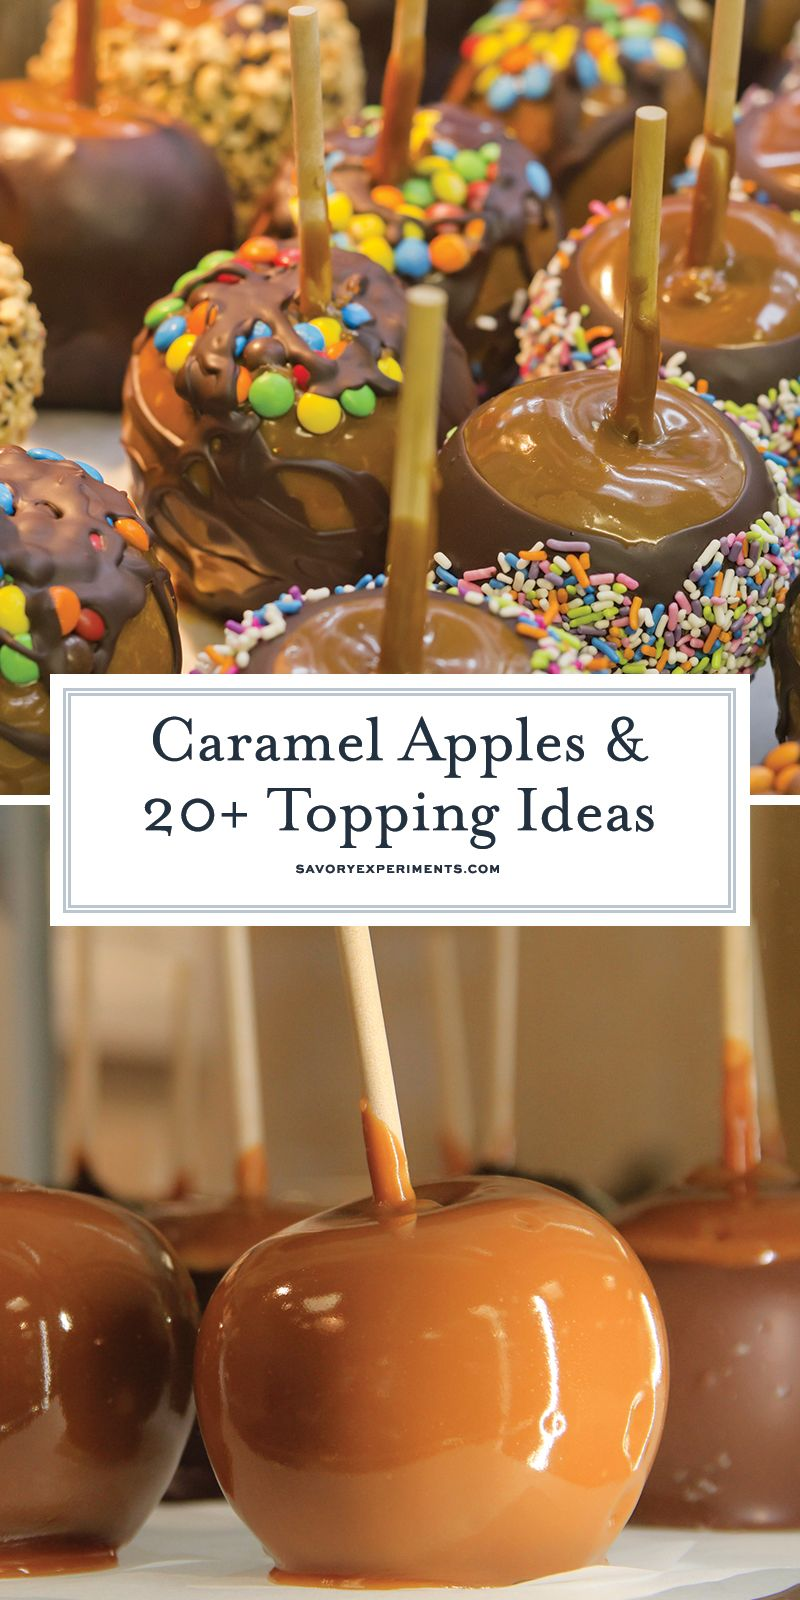 Classic caramel apples recipe with 20+ ideas to roll them